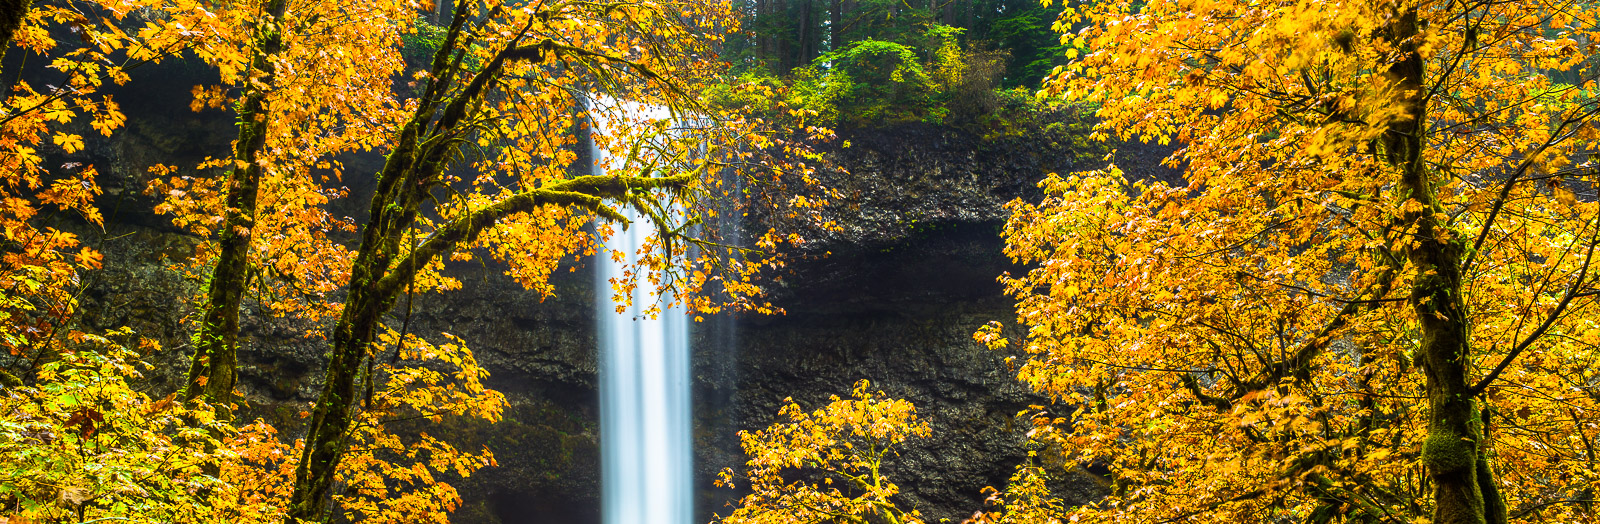 Silver Falls,Silver Falls State Park, Oregon,Water,Shine,Colorful,Autumn,Leaf, photo